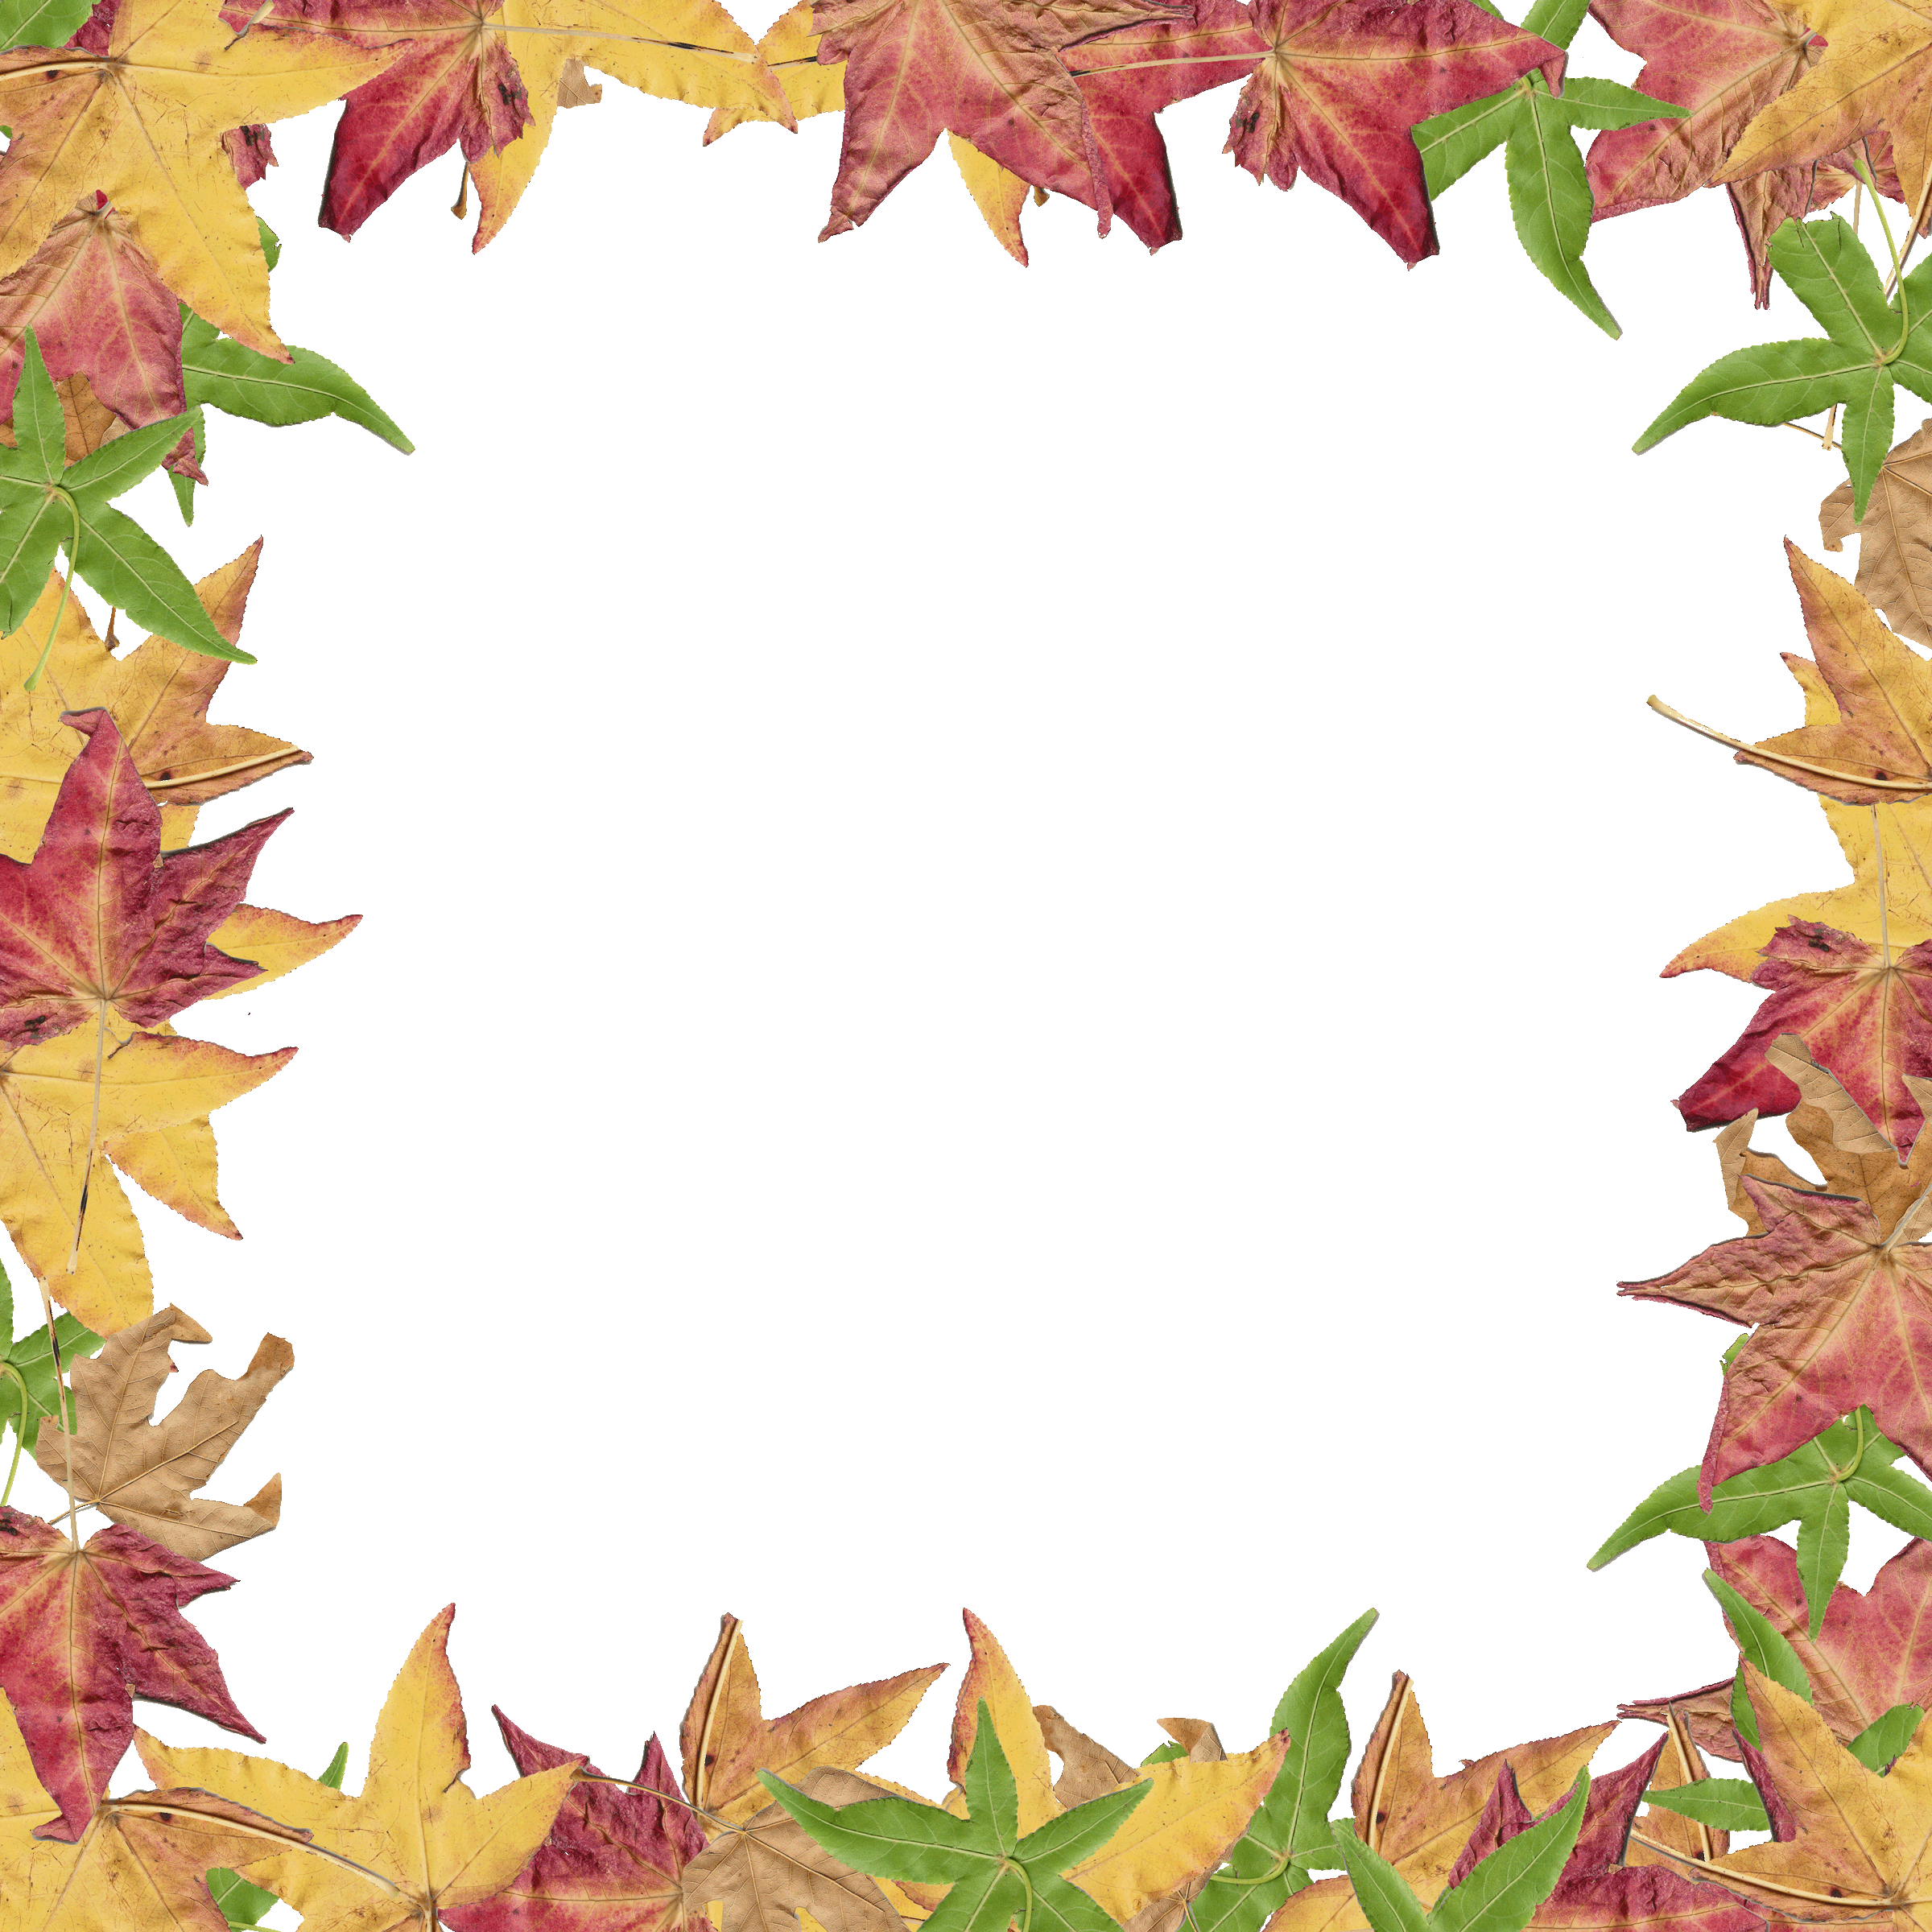 free clipart fall leaves at getdrawings com free for personal use rh getdrawings com clip art fall leaf border clipart fall borders